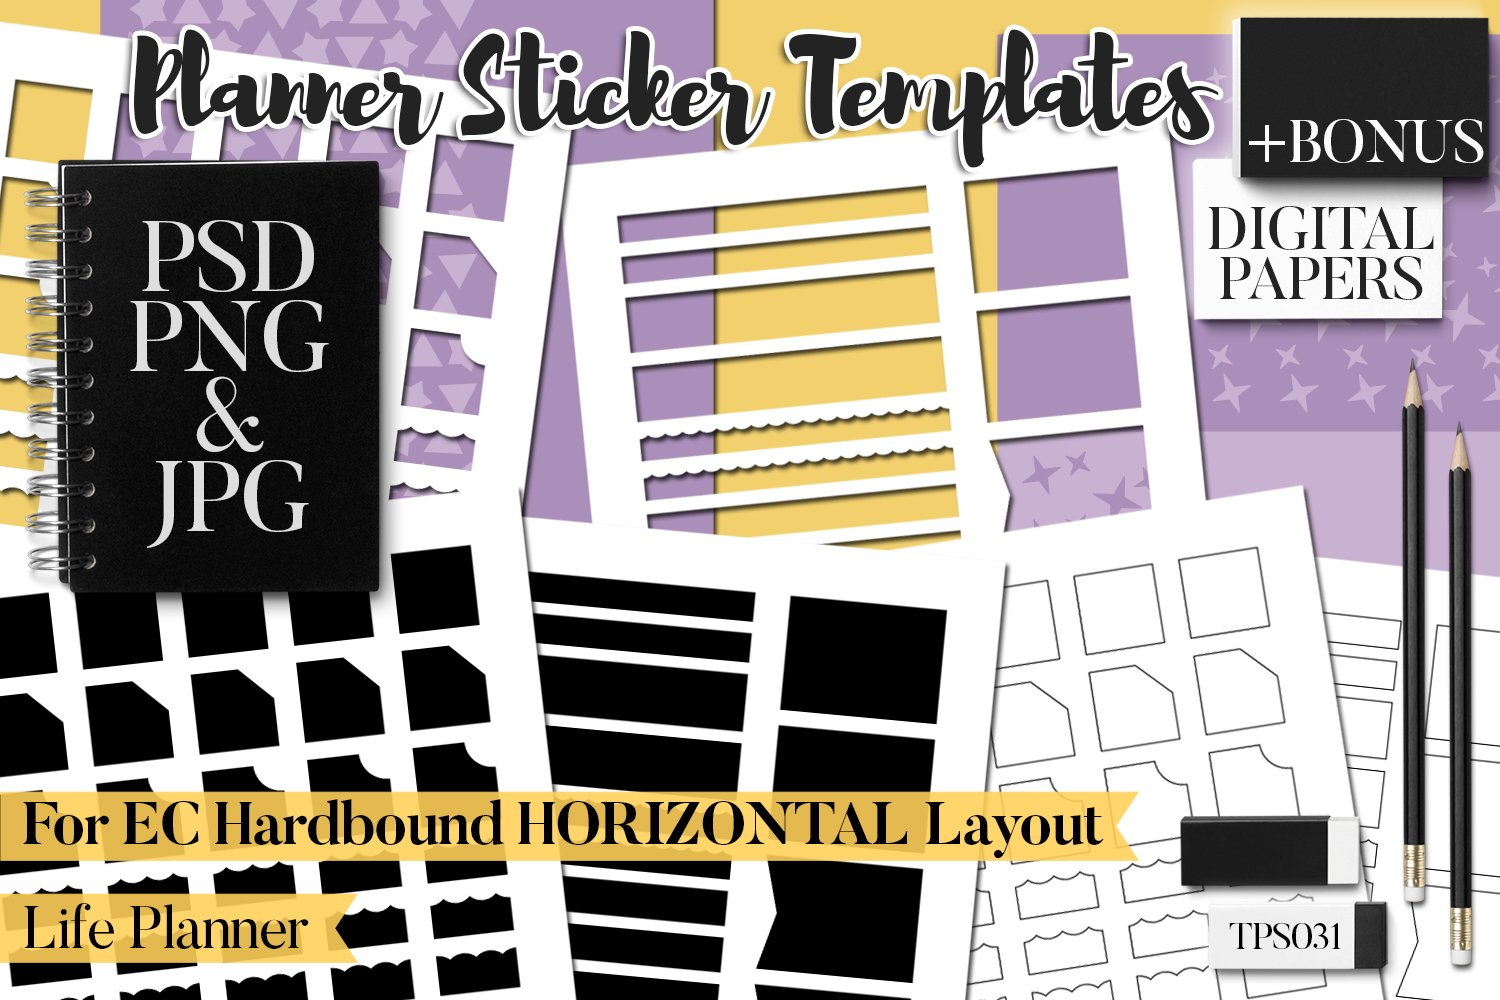 Planner Stickers Templates - Bundle Vol. 11 example image 2